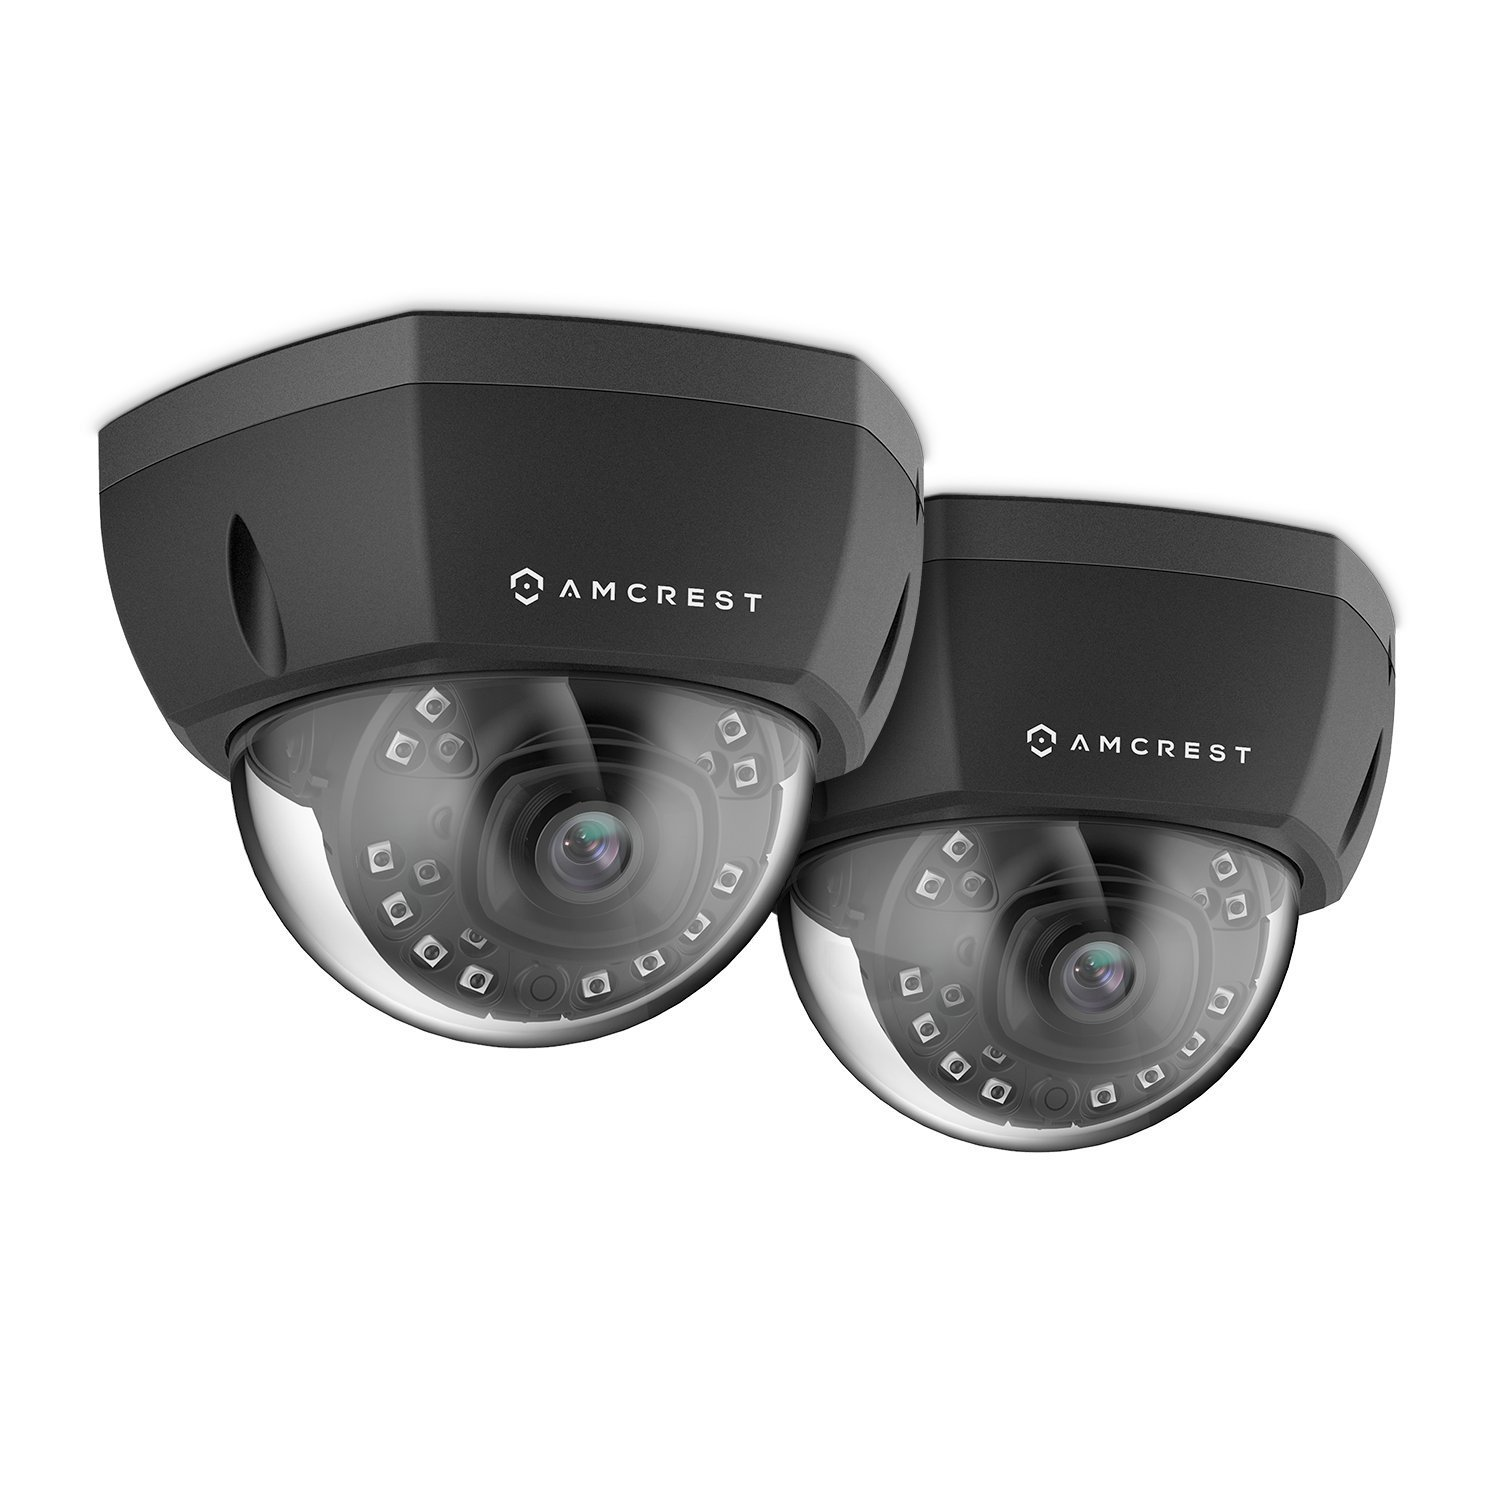 2-Pack Amcrest ProHD Outdoor 1080P PoE Vandal Dome IP Security Camera - IP67 Weatherproof, 2MP (1920 TVL), IP2M-851EB (Black)